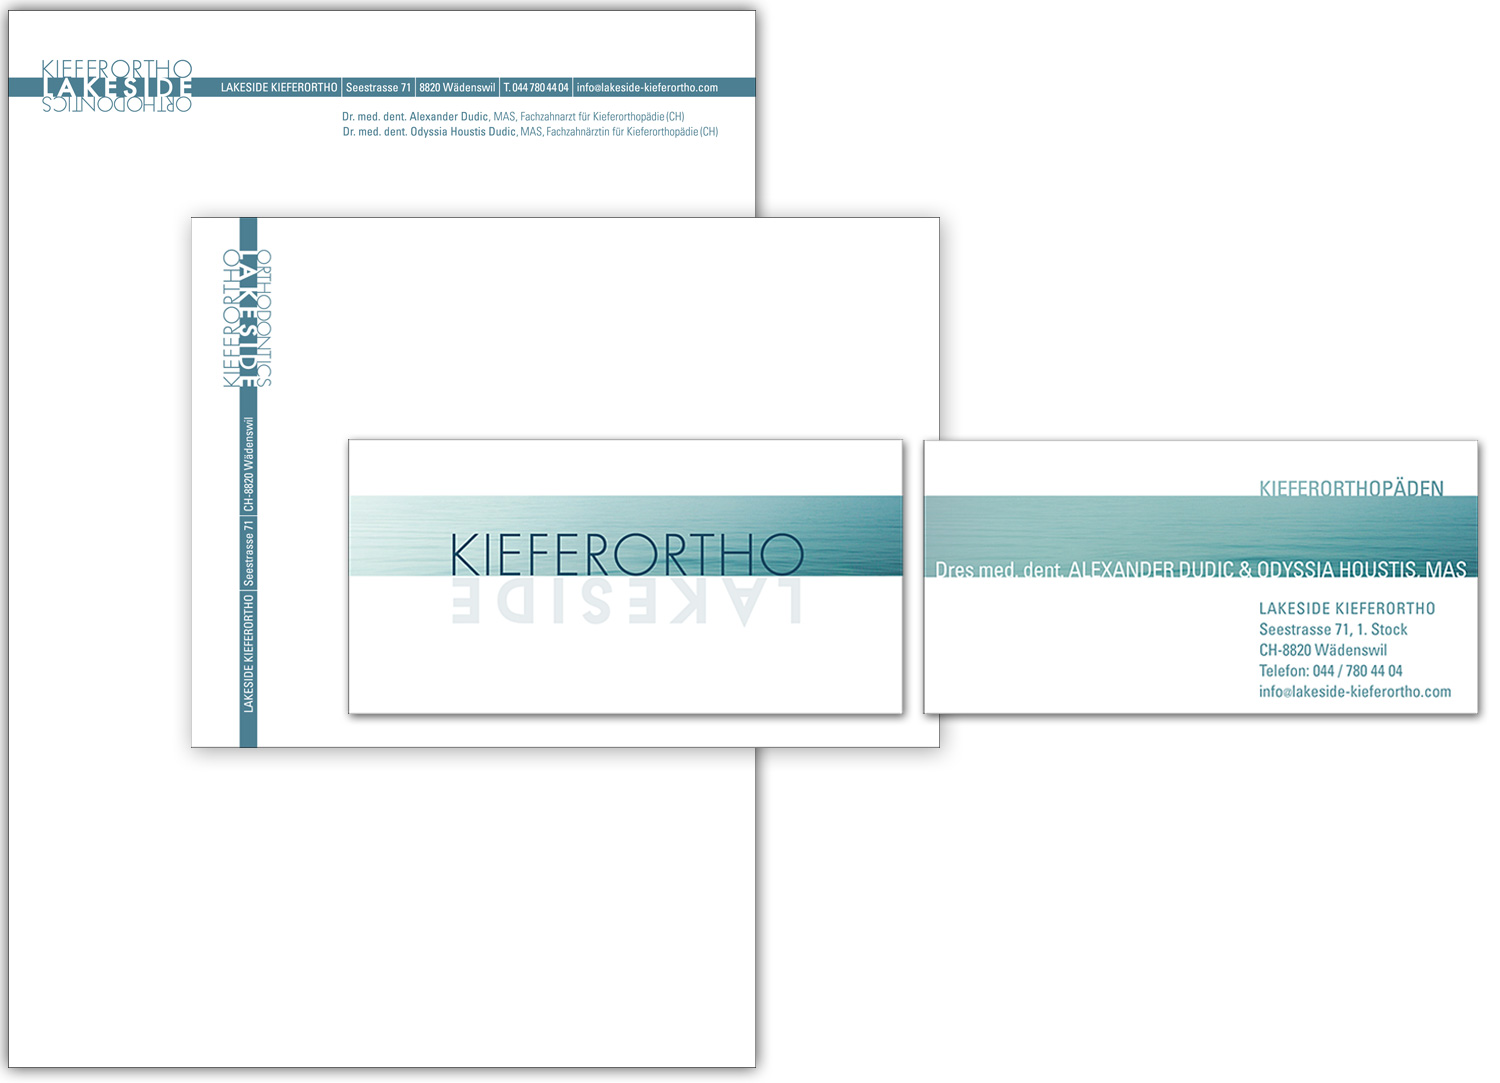 Portfolio_Advertising_Publicite_Creative_Patric_Pop_Geneve_Geneva_Logo_Lakeside-Kieferortho.jpg